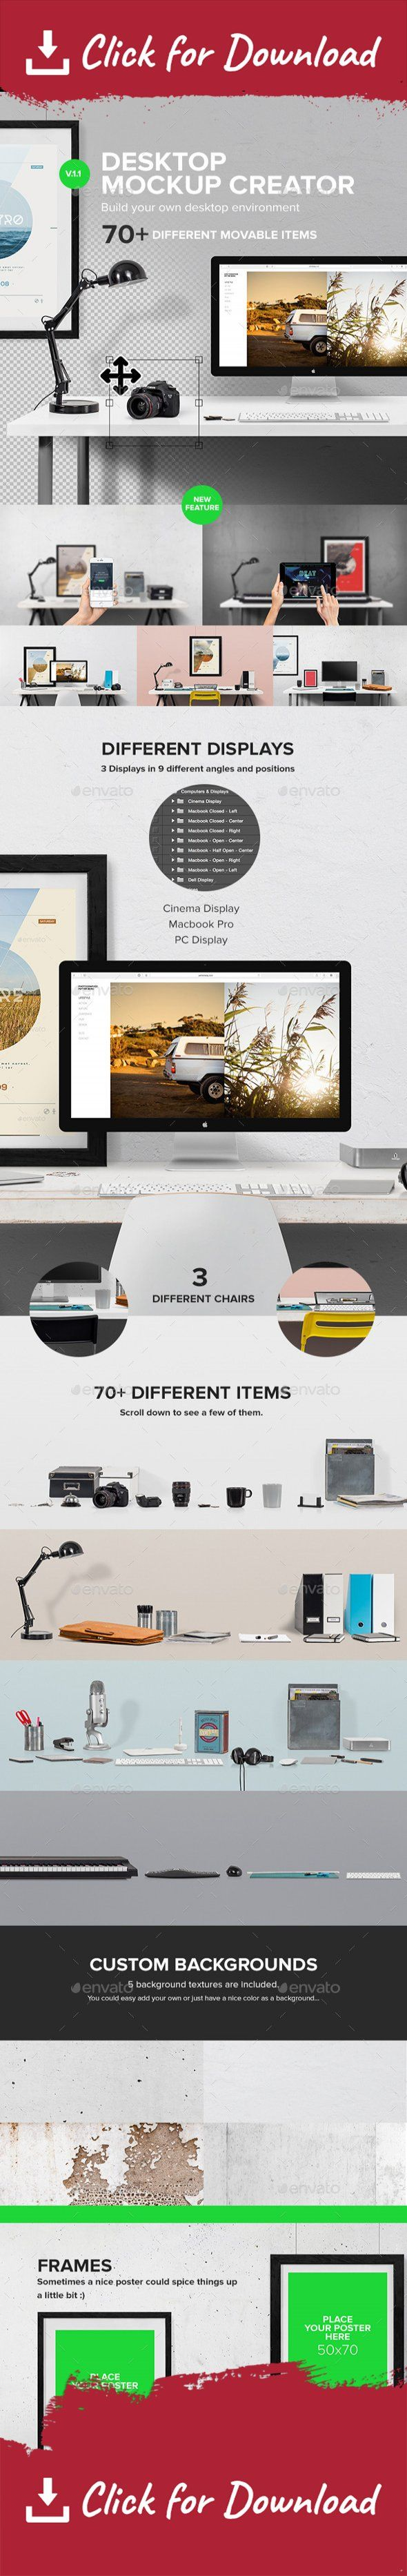 application, builder, cinema display, clean, creative, creator, header, hero, ipad, iphone, iphone 6, macbook, macbook mockup, mockup, mockups, photorealistic, products, scene, screen, studio, tablet, template, workplace, workspace It has never been easier to create your own desktop environment scene. It just takes seconds! You could use Macbook, Cinema Display, PC Monitor and more to get the environment you need.   You could use it for header, presentations, website mockups, gallery…